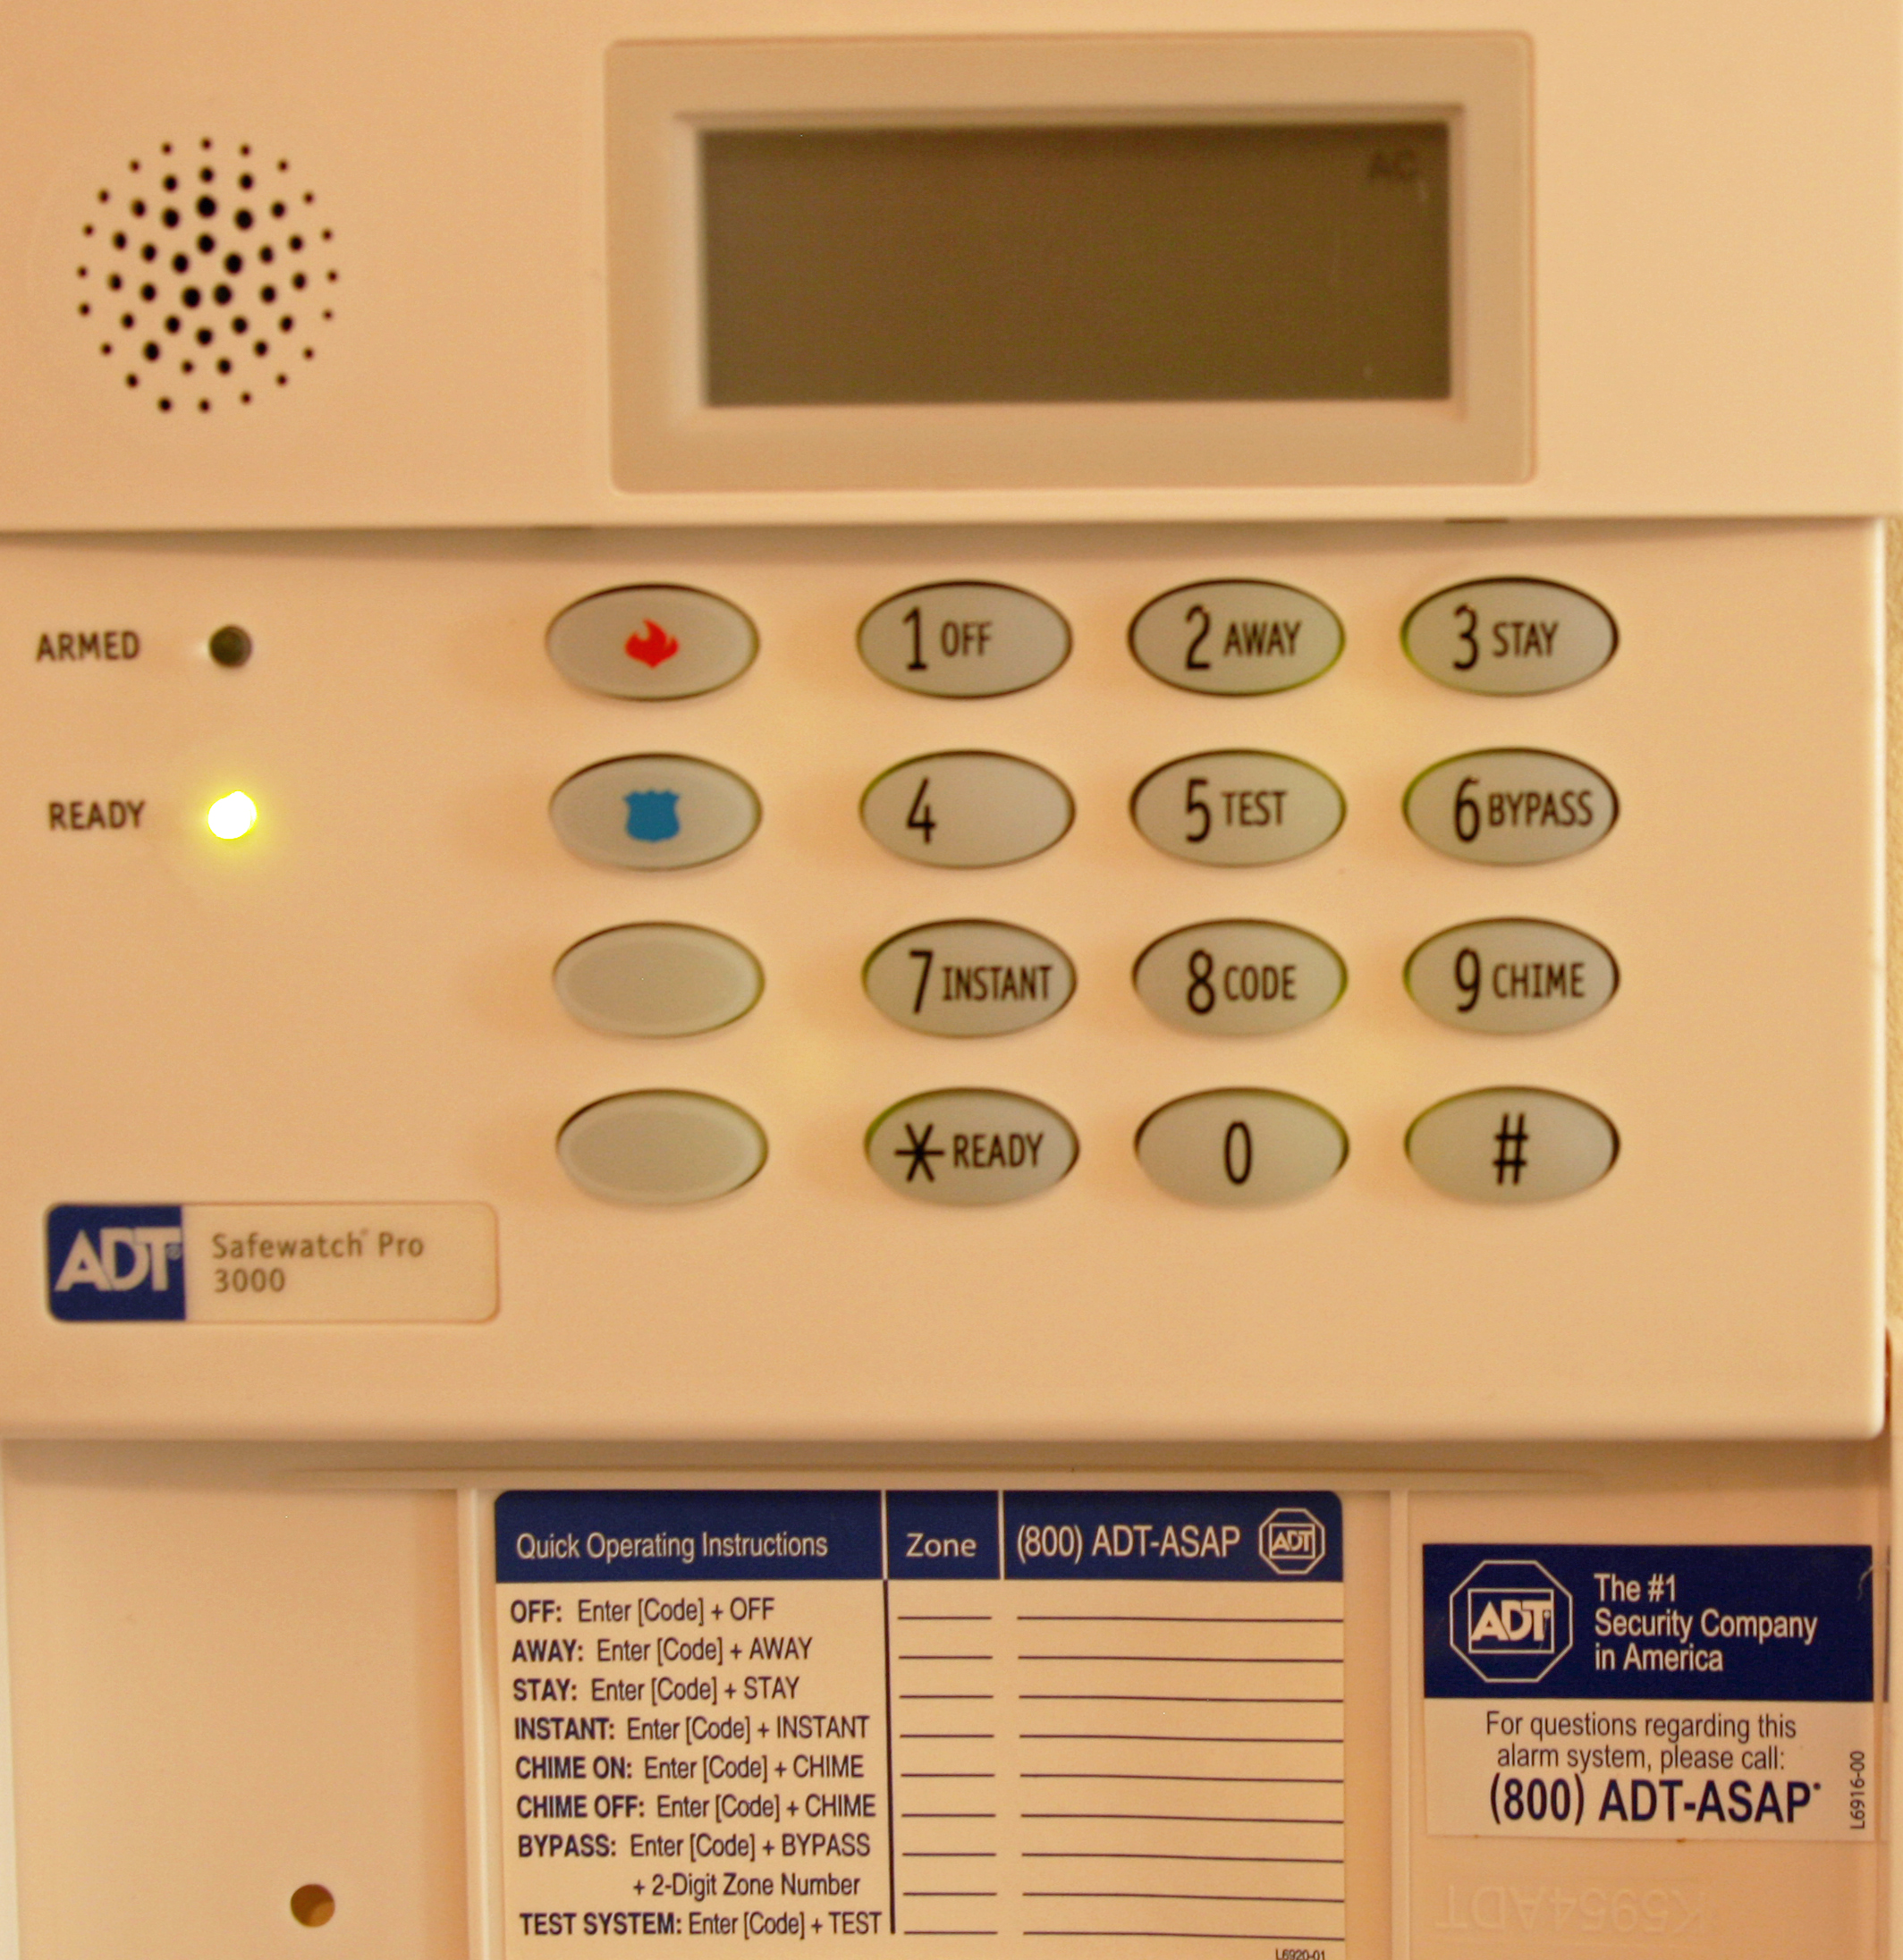 Adt Safewatch Pro 3000 Wiring Diagram, · safewatch pro 3000 krebs on  security rh krebsonsecurity com